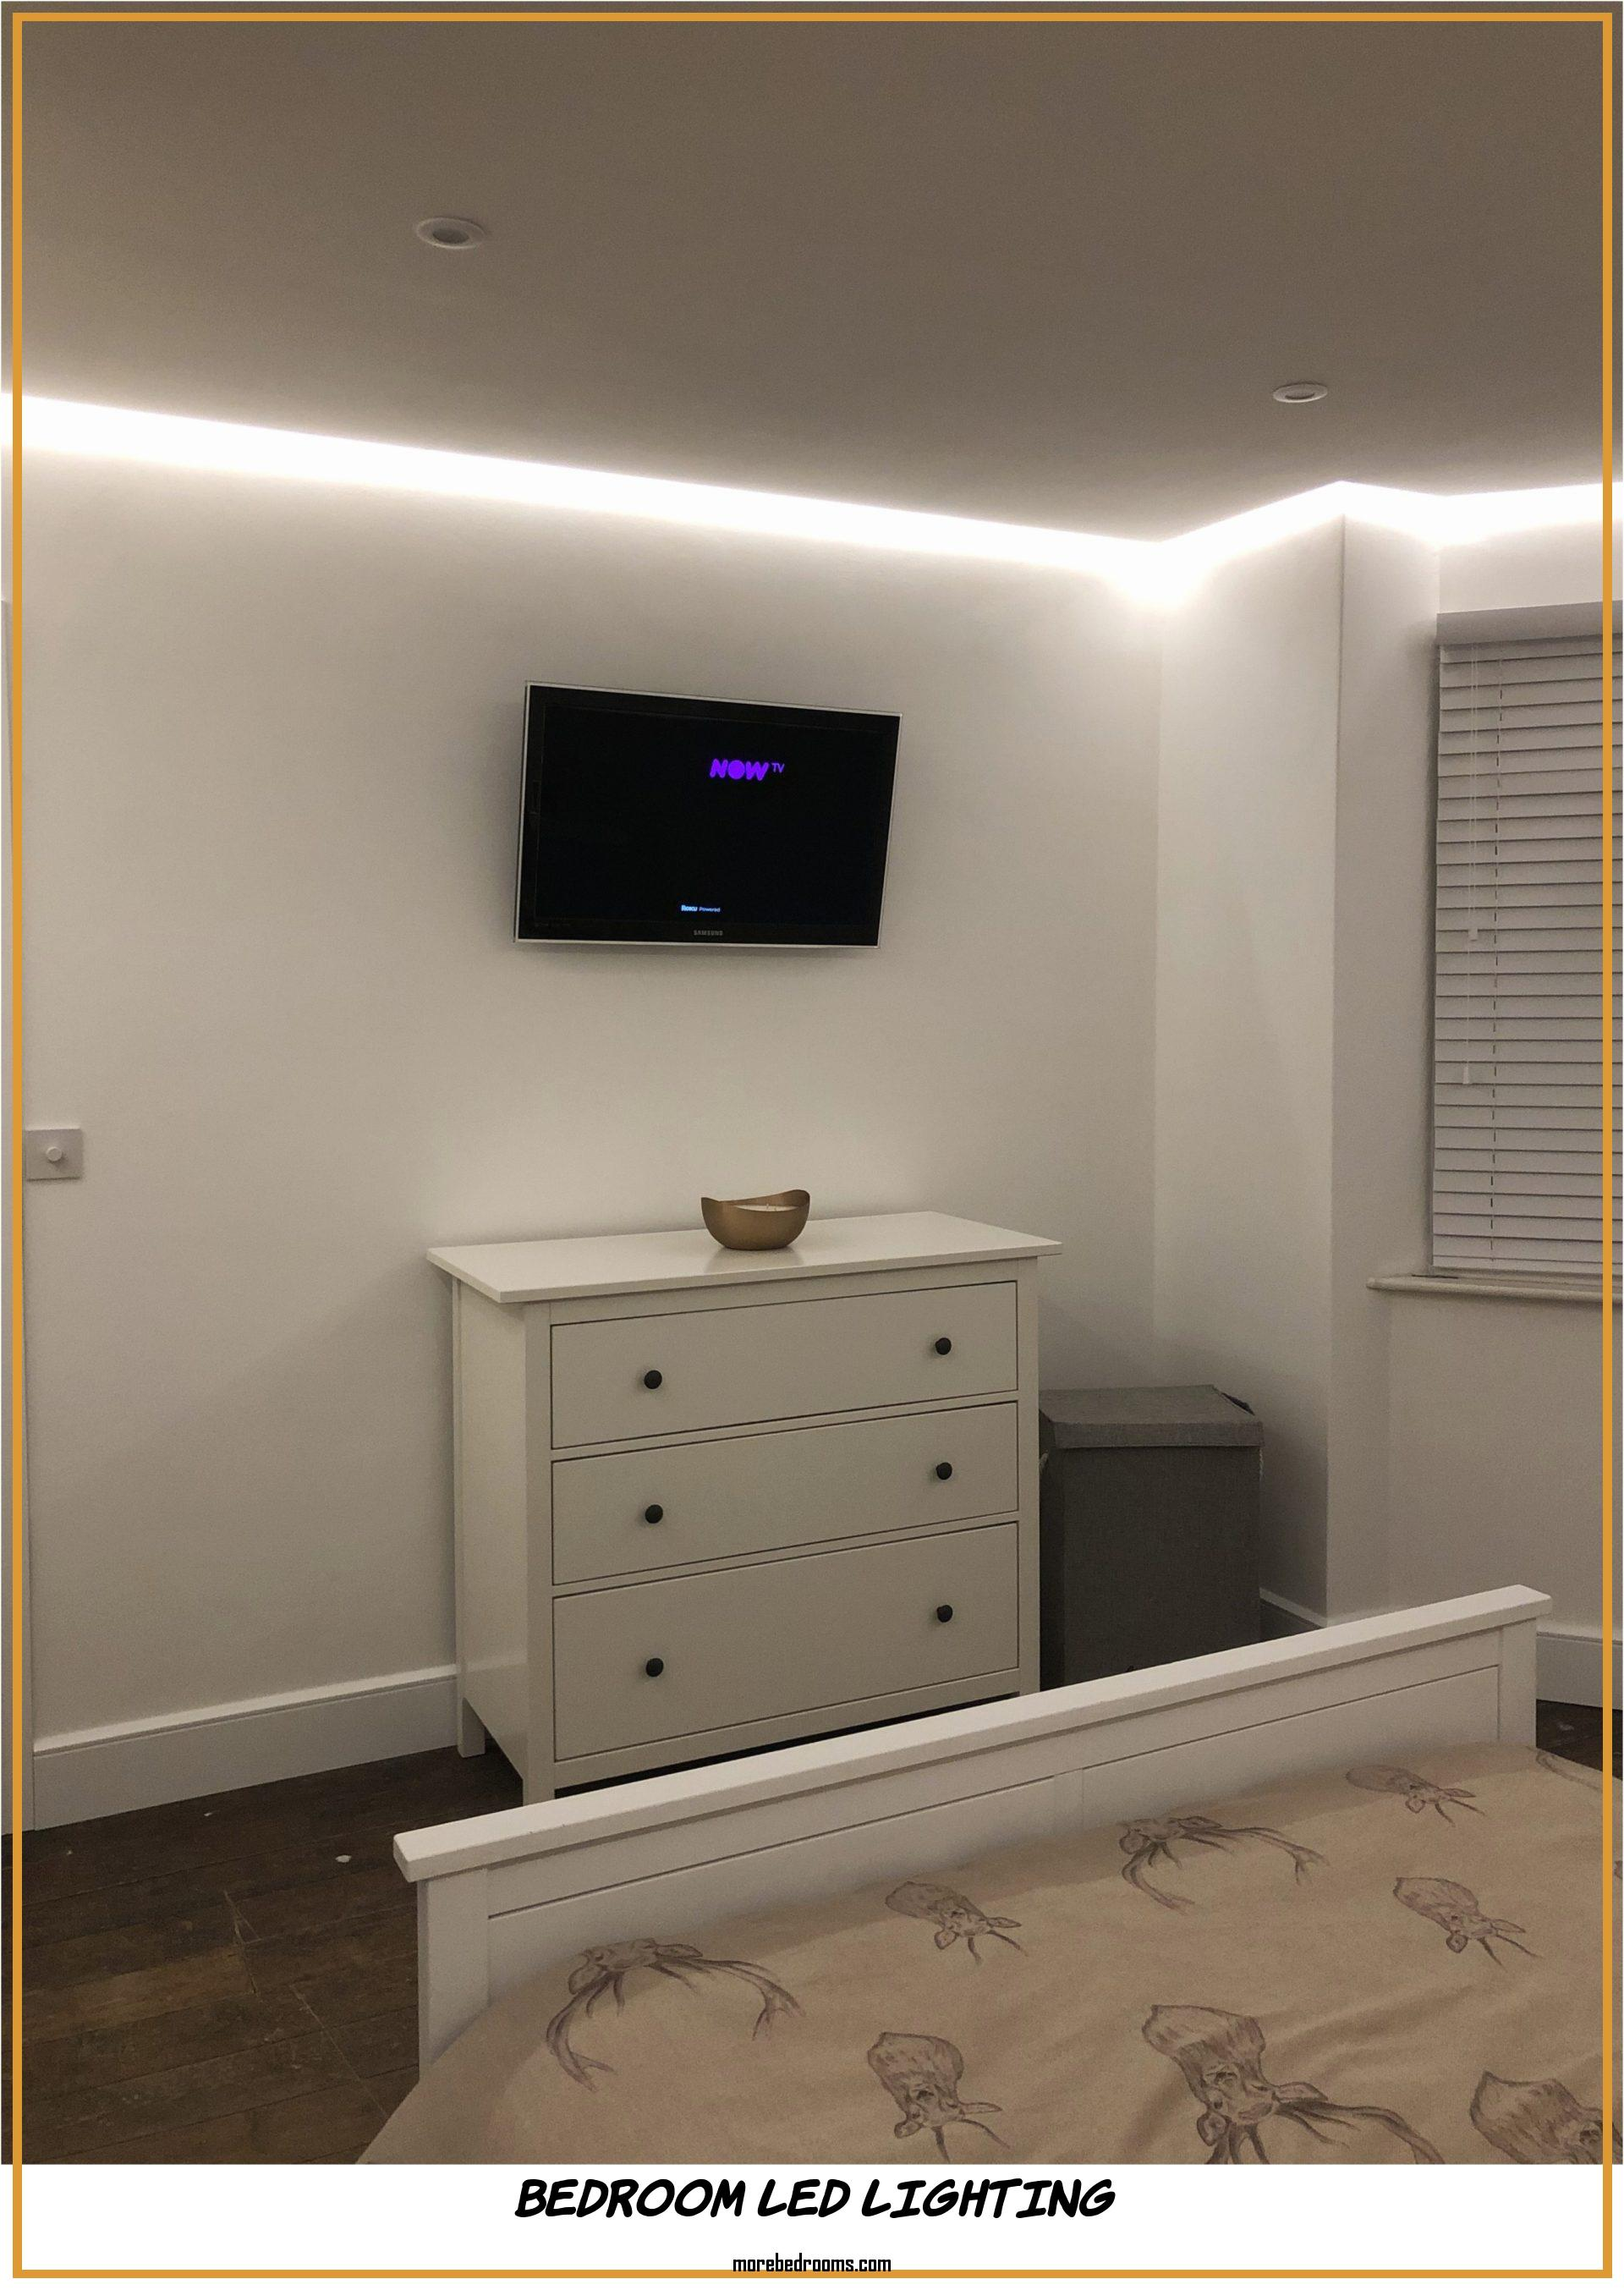 Bedroom Led Lighting